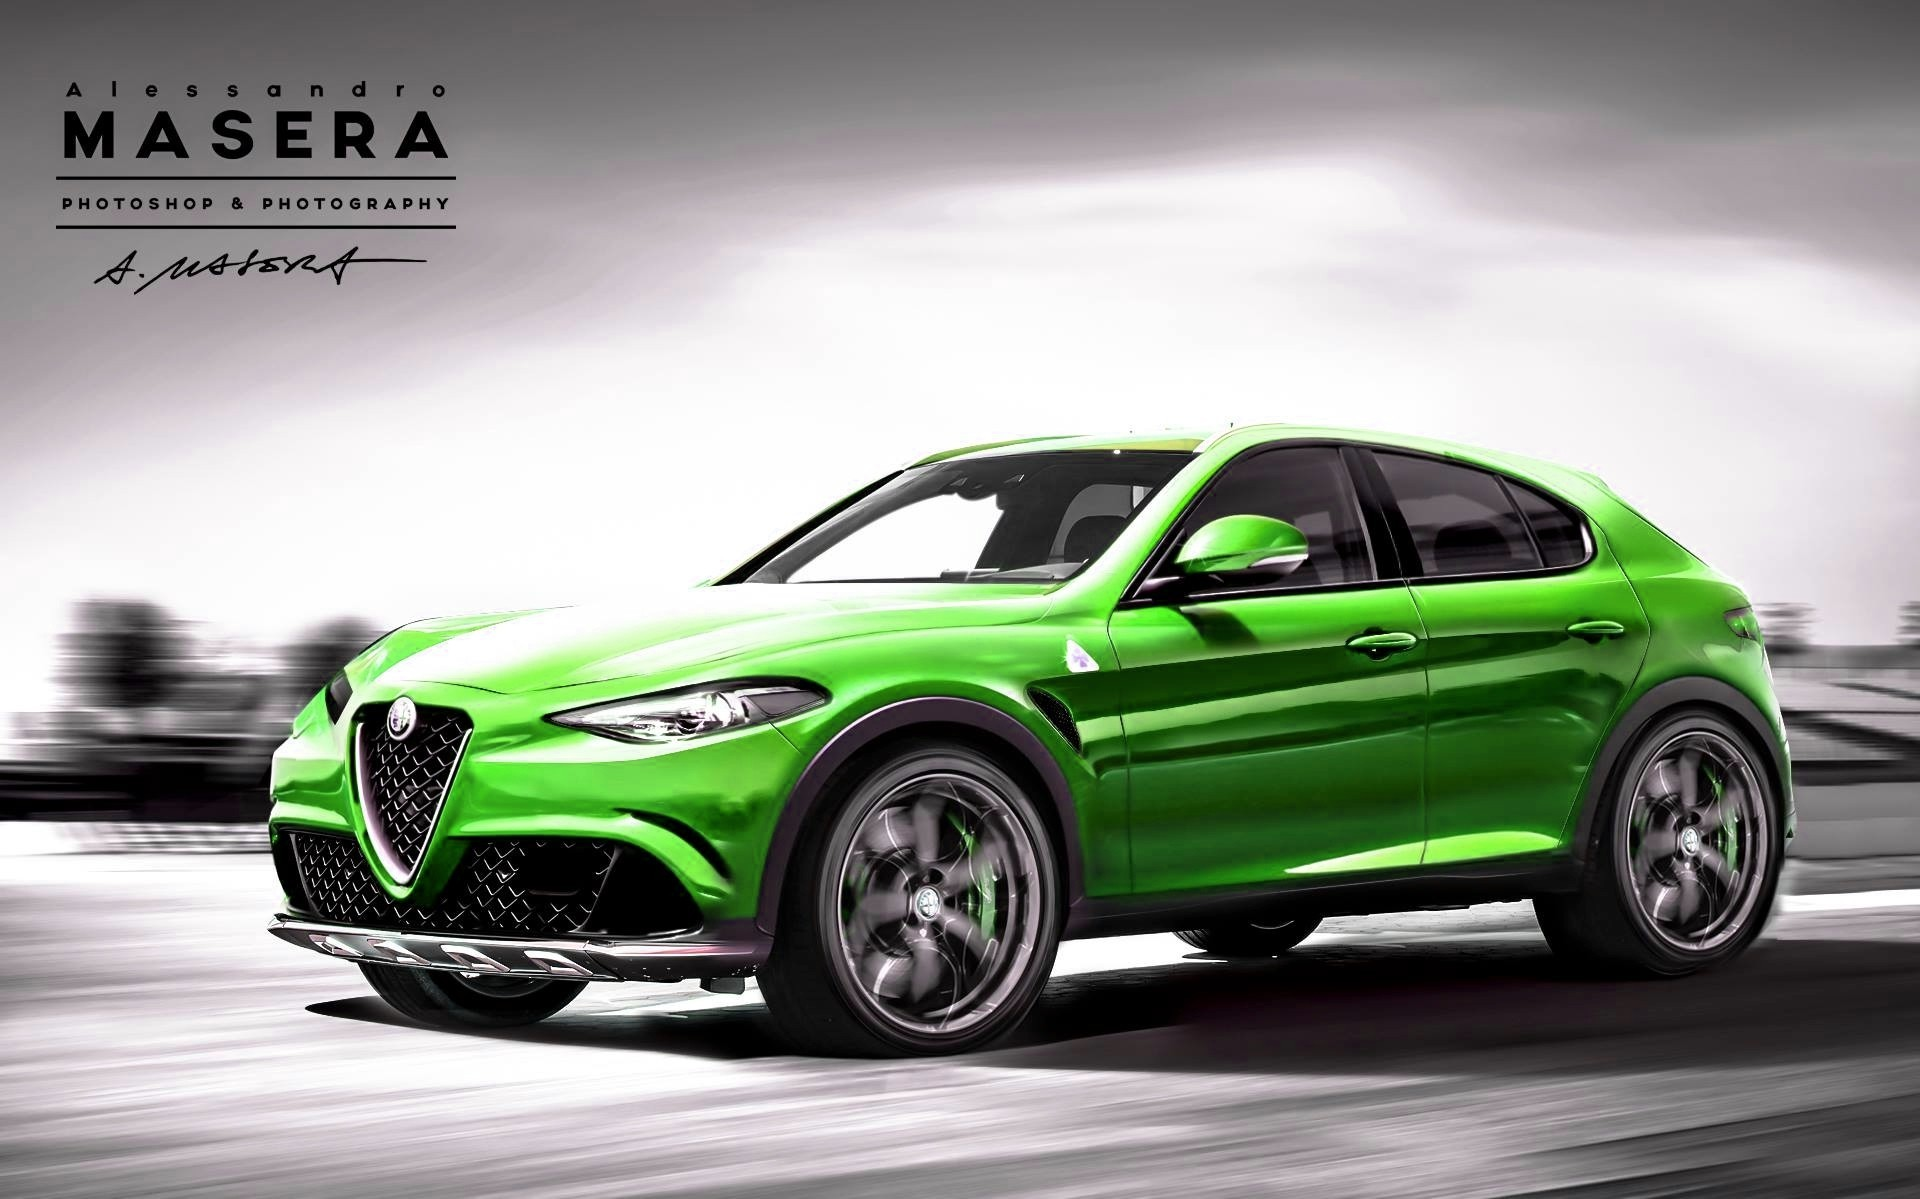 2017 alfa romeo stelvio suv tipo 949 debut set for 2016 la auto show autoevolution. Black Bedroom Furniture Sets. Home Design Ideas